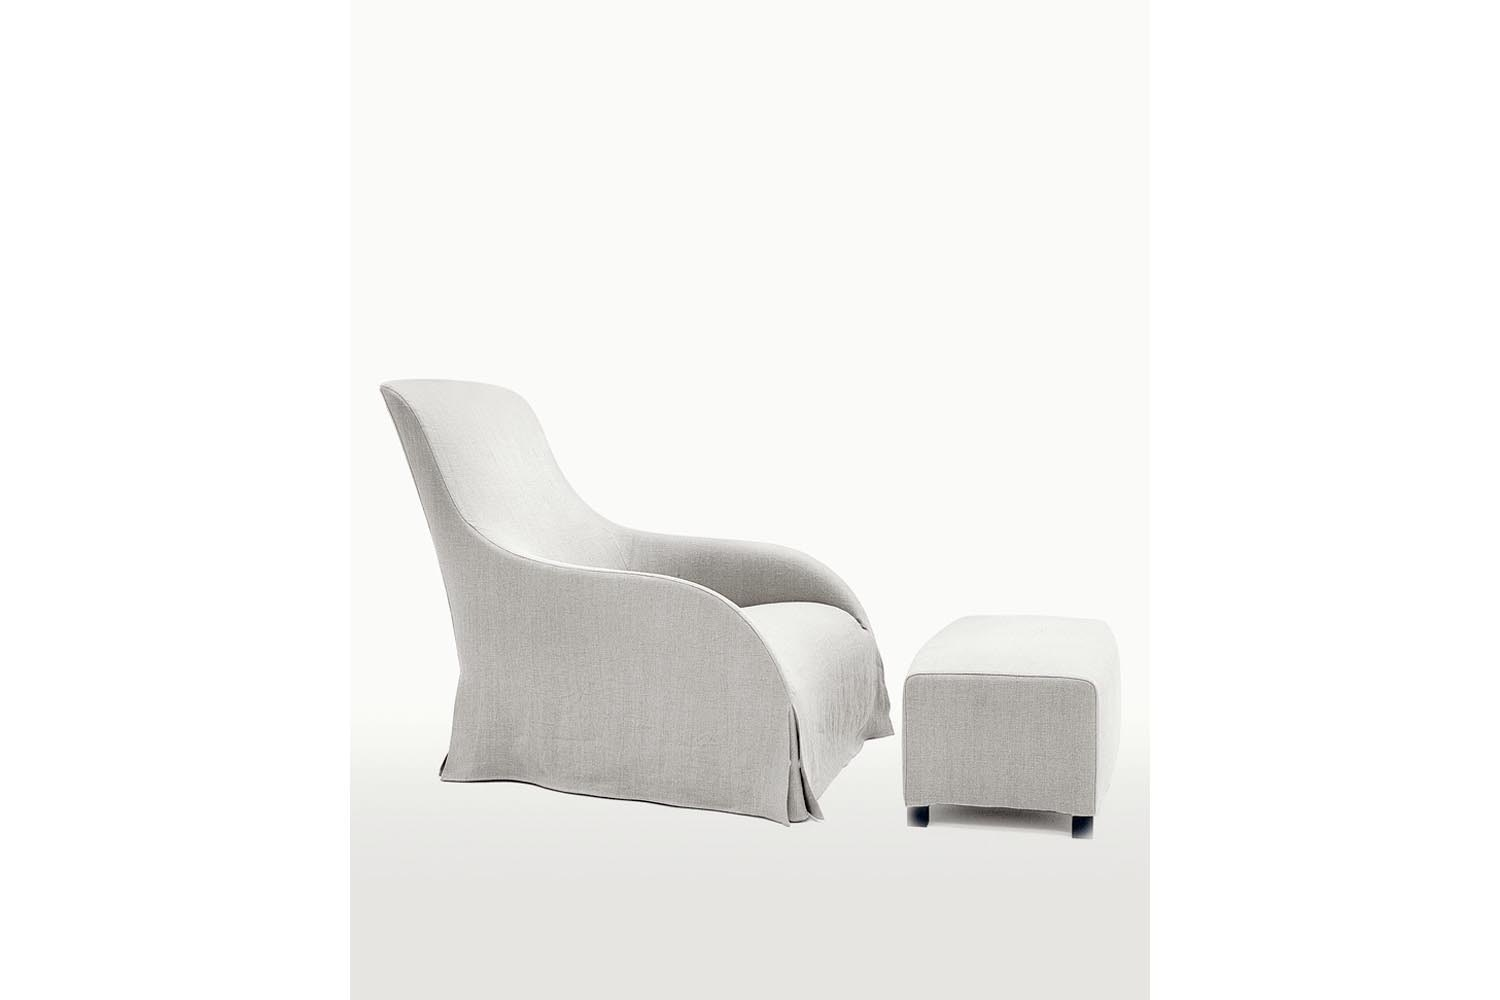 Kalos Armchair by Antonio Citterio for Maxalto